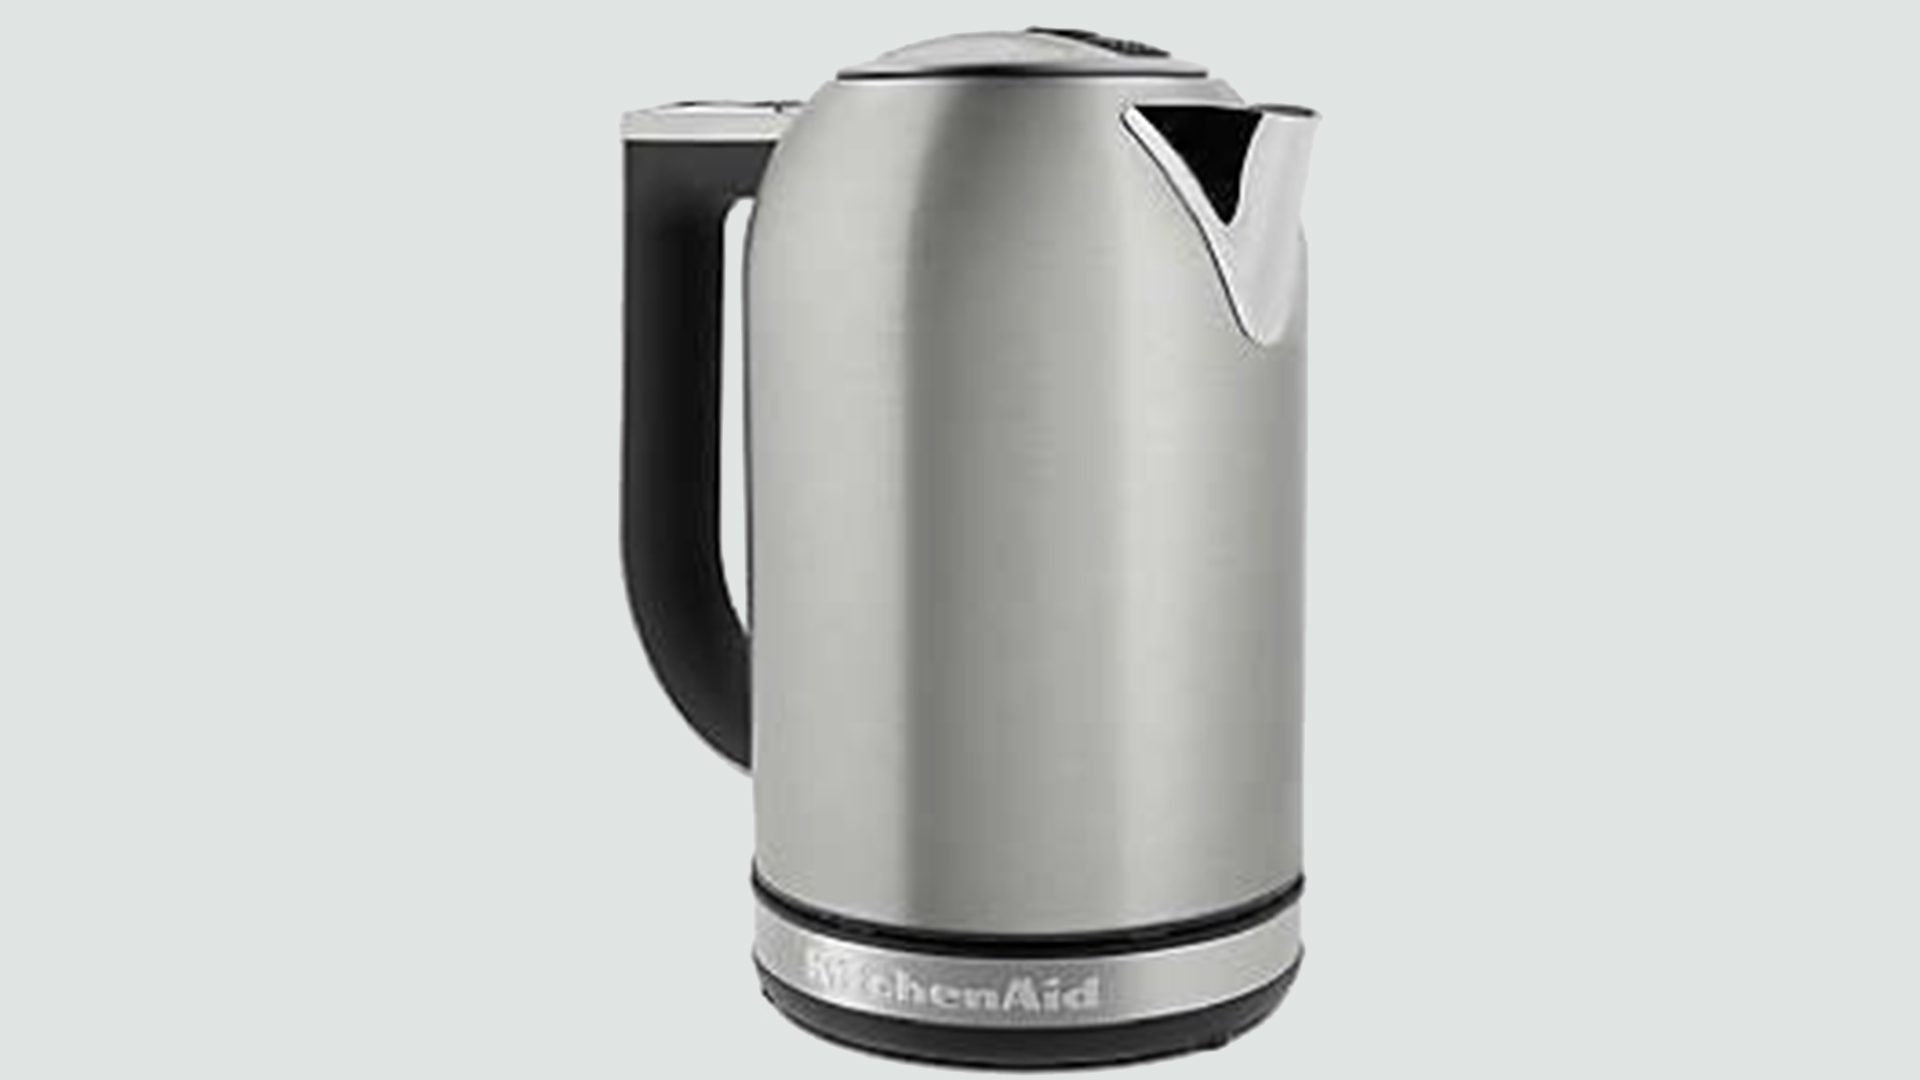 KitchenAid electric kettles recalled due to burn risk - TODAY.com